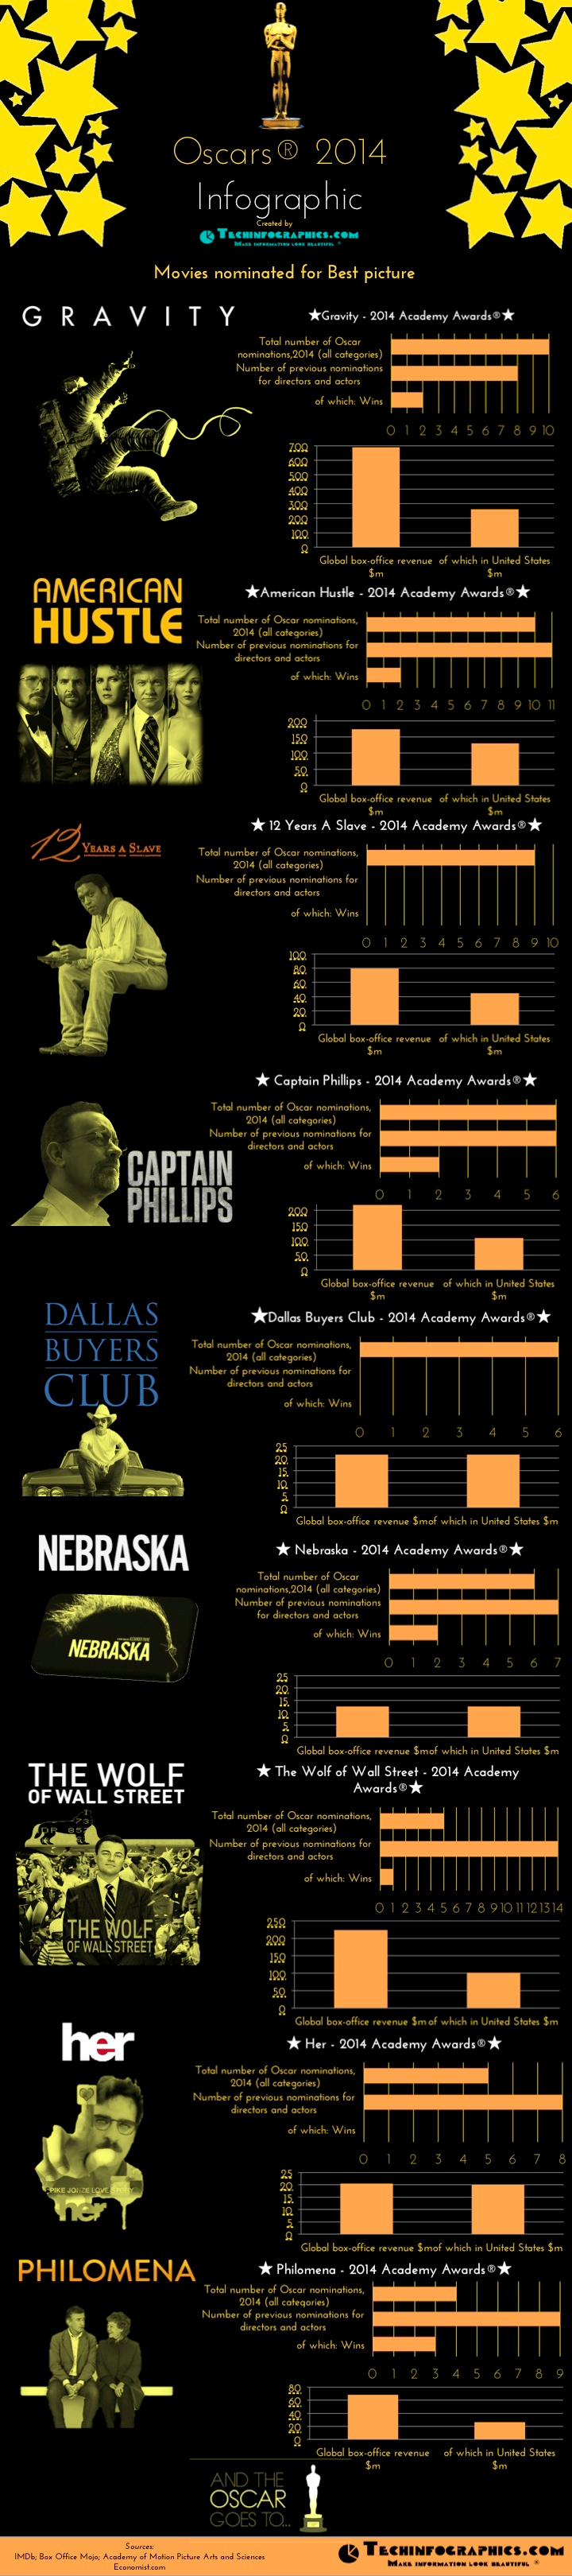 movie-academy-awards-2014-infographic--9-oscar-nominees-for-the-best-picture_52ee858c73491